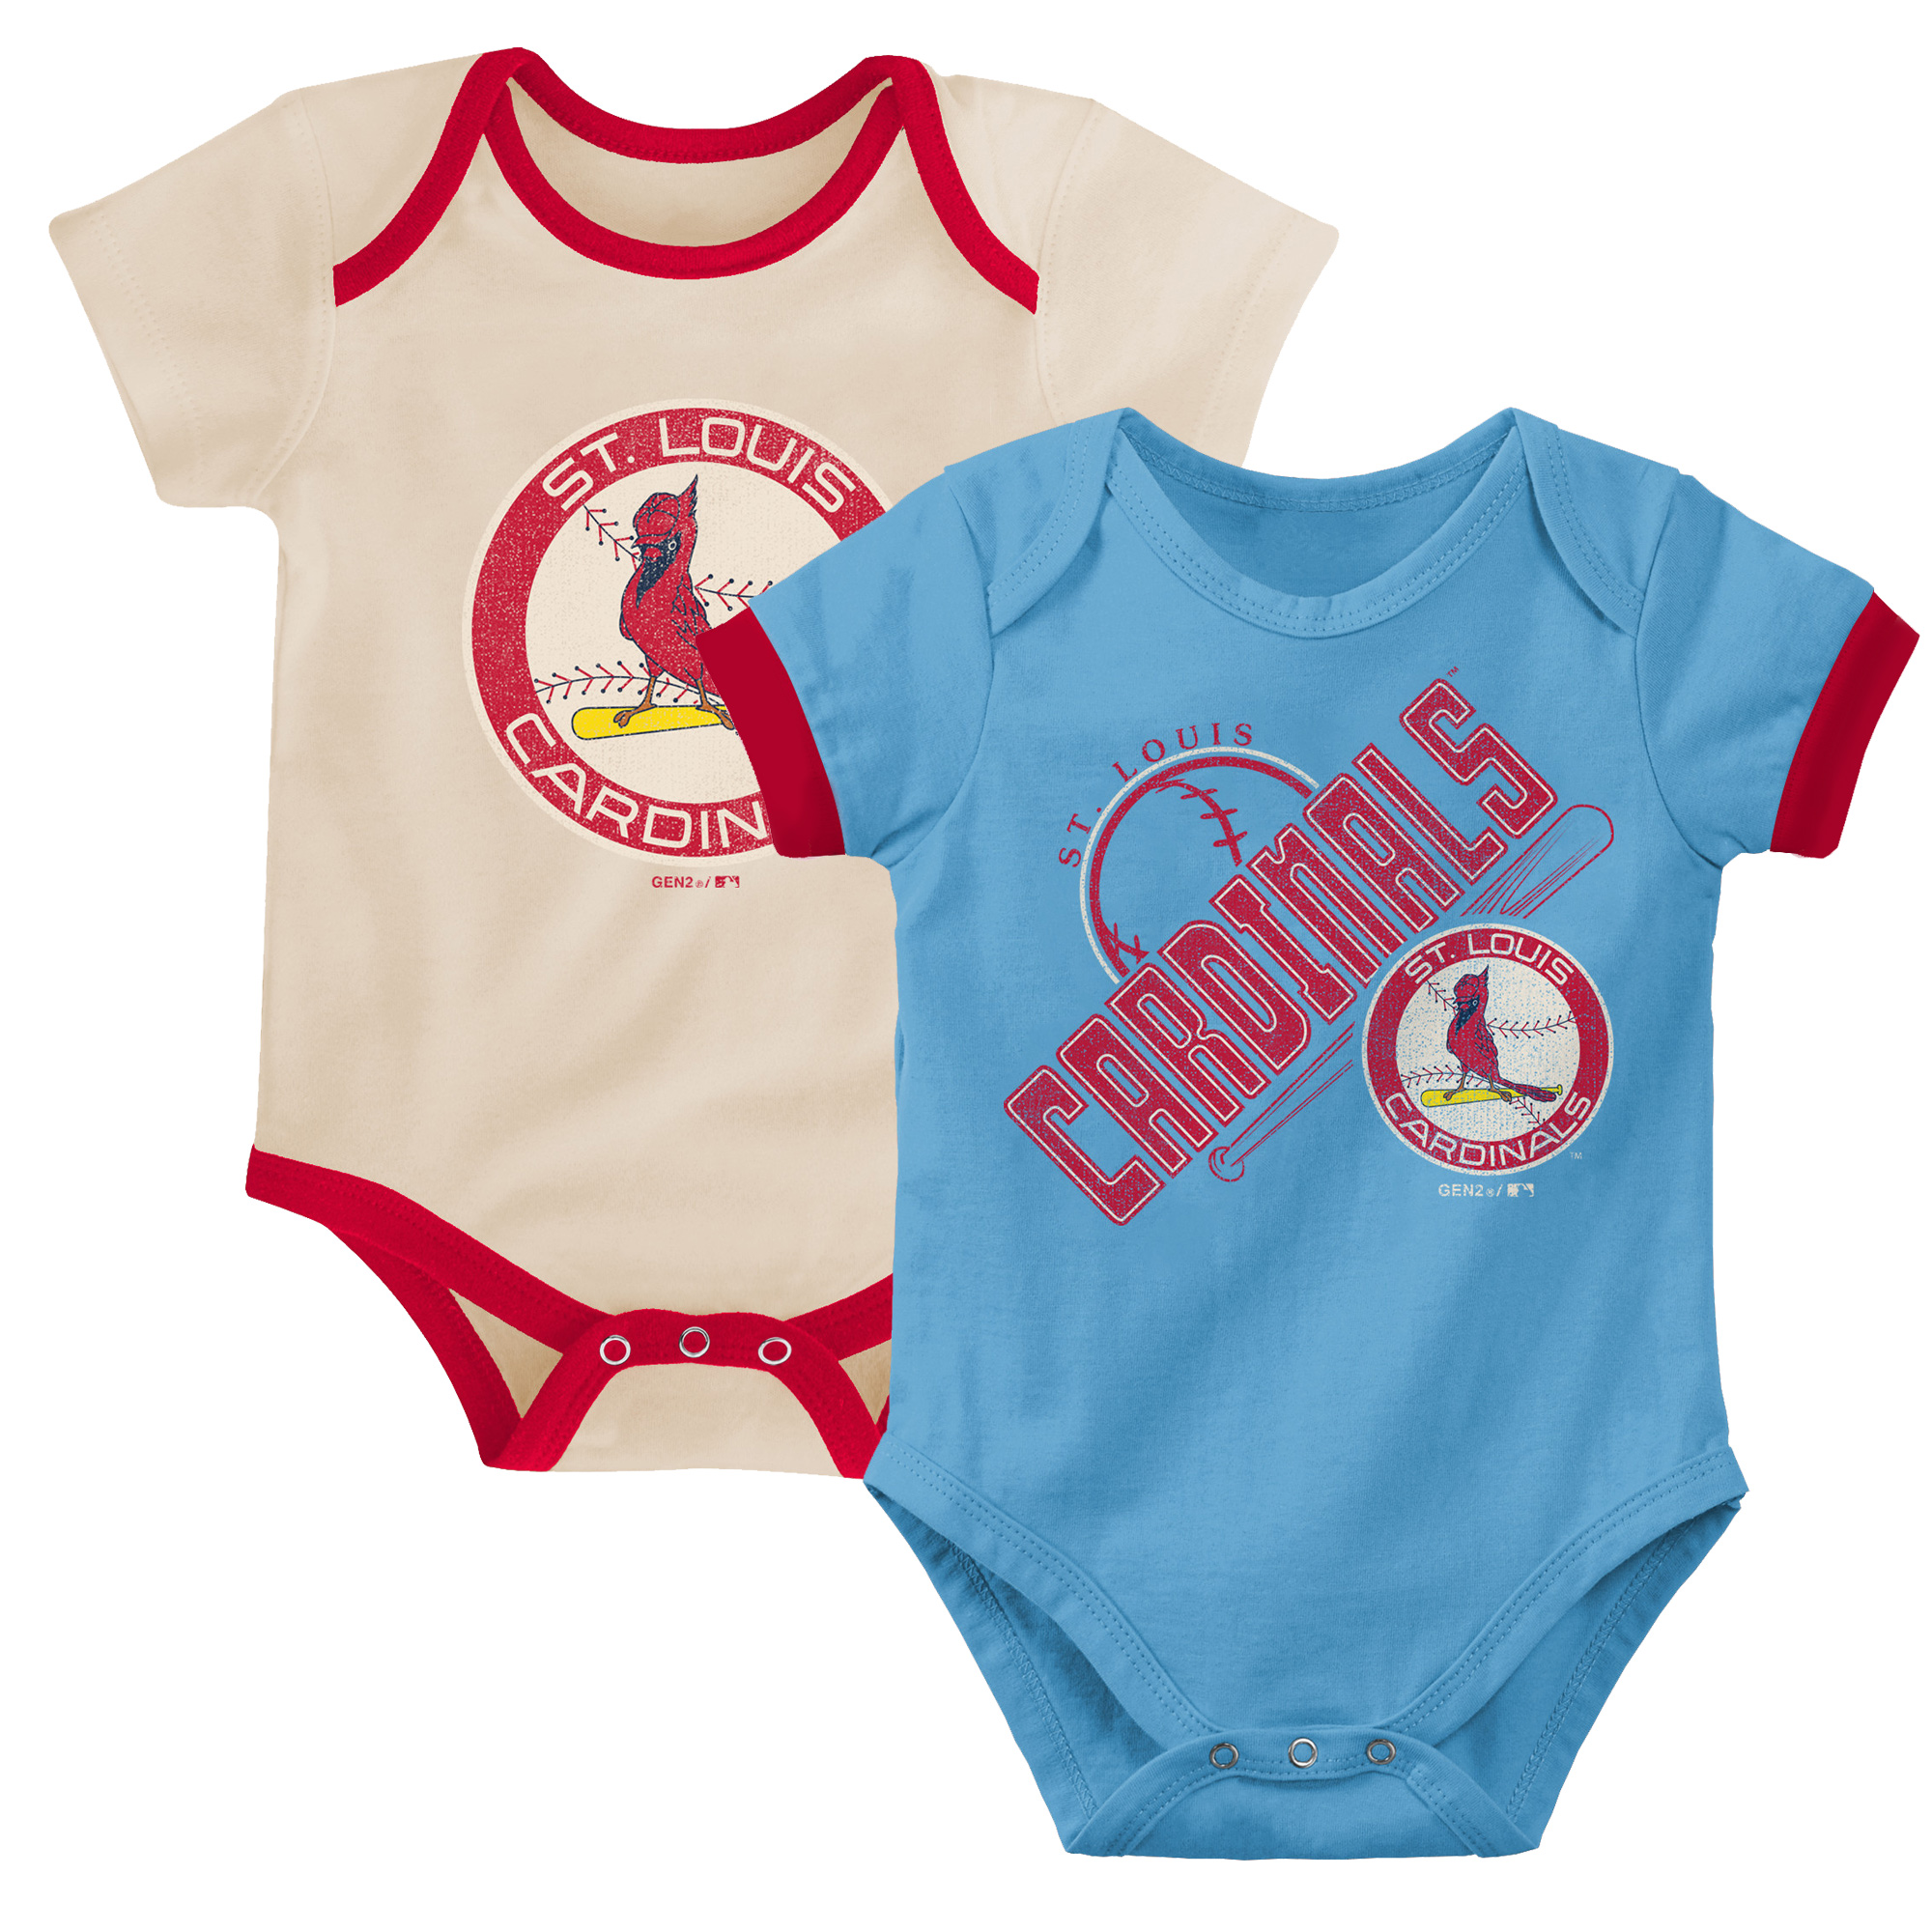 St. Louis Cardinals Infant Cooperstown Collection Groovy Game Two-Pack Bodysuit Set - Light Blue/Tan